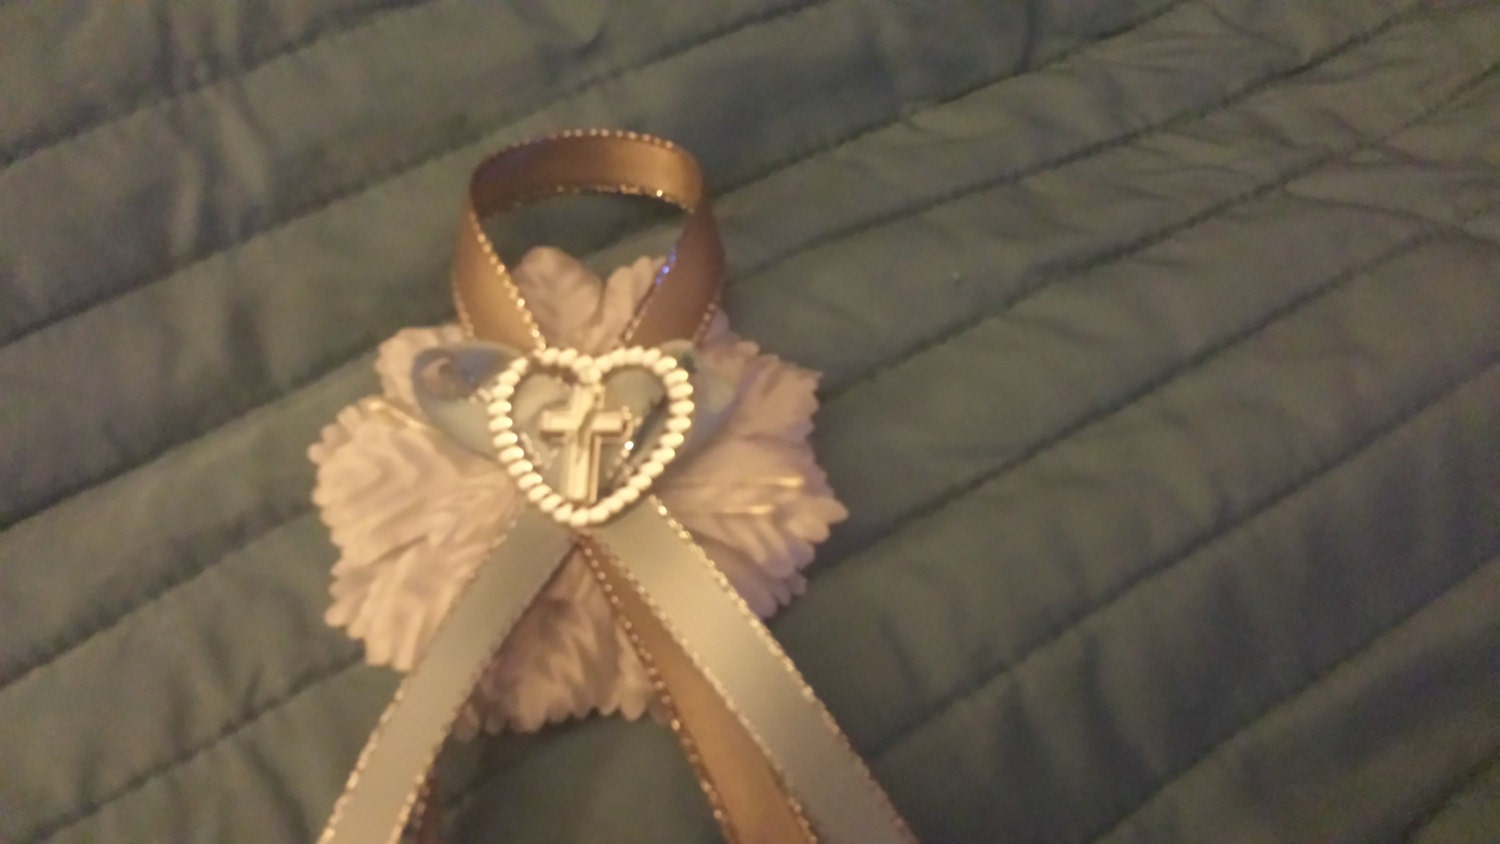 Relatively Custom 25 memorial funeral sympathy capias/ pin ons choice JD67